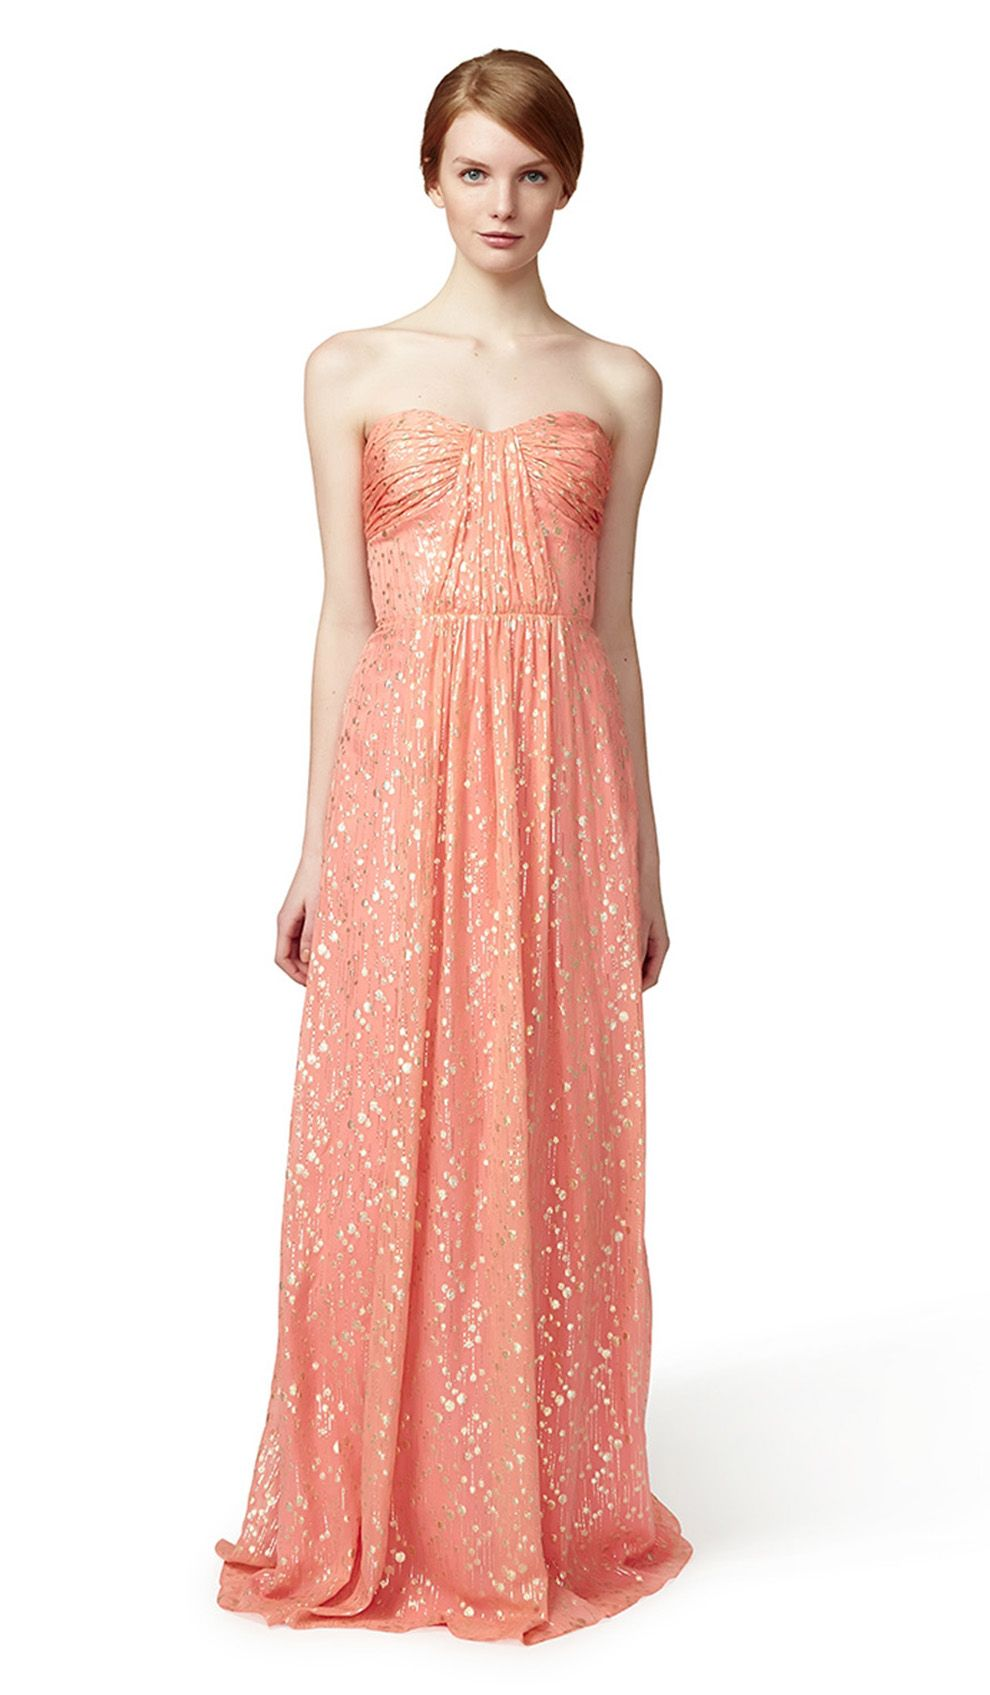 Erin fetherston coral maxi dress chic by choice hire erin fetherston coral maxi dress chic by choice hire luxury ombrellifo Choice Image